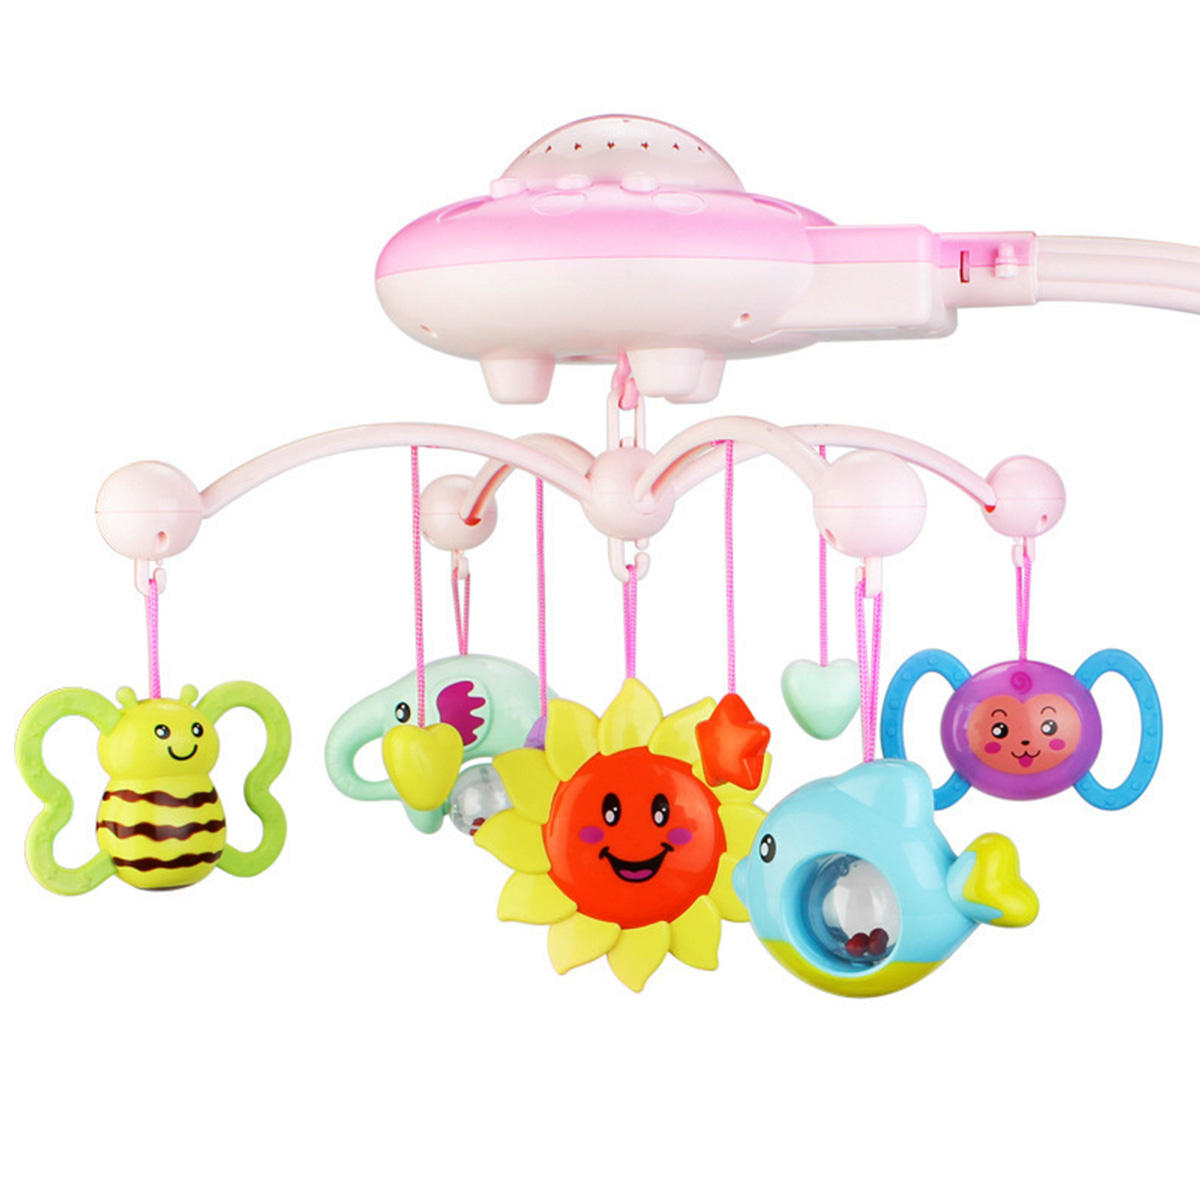 Crib Mobile Musical Bed Bell With Animal Rattles Projection Early Learning Toys 0-12 Months